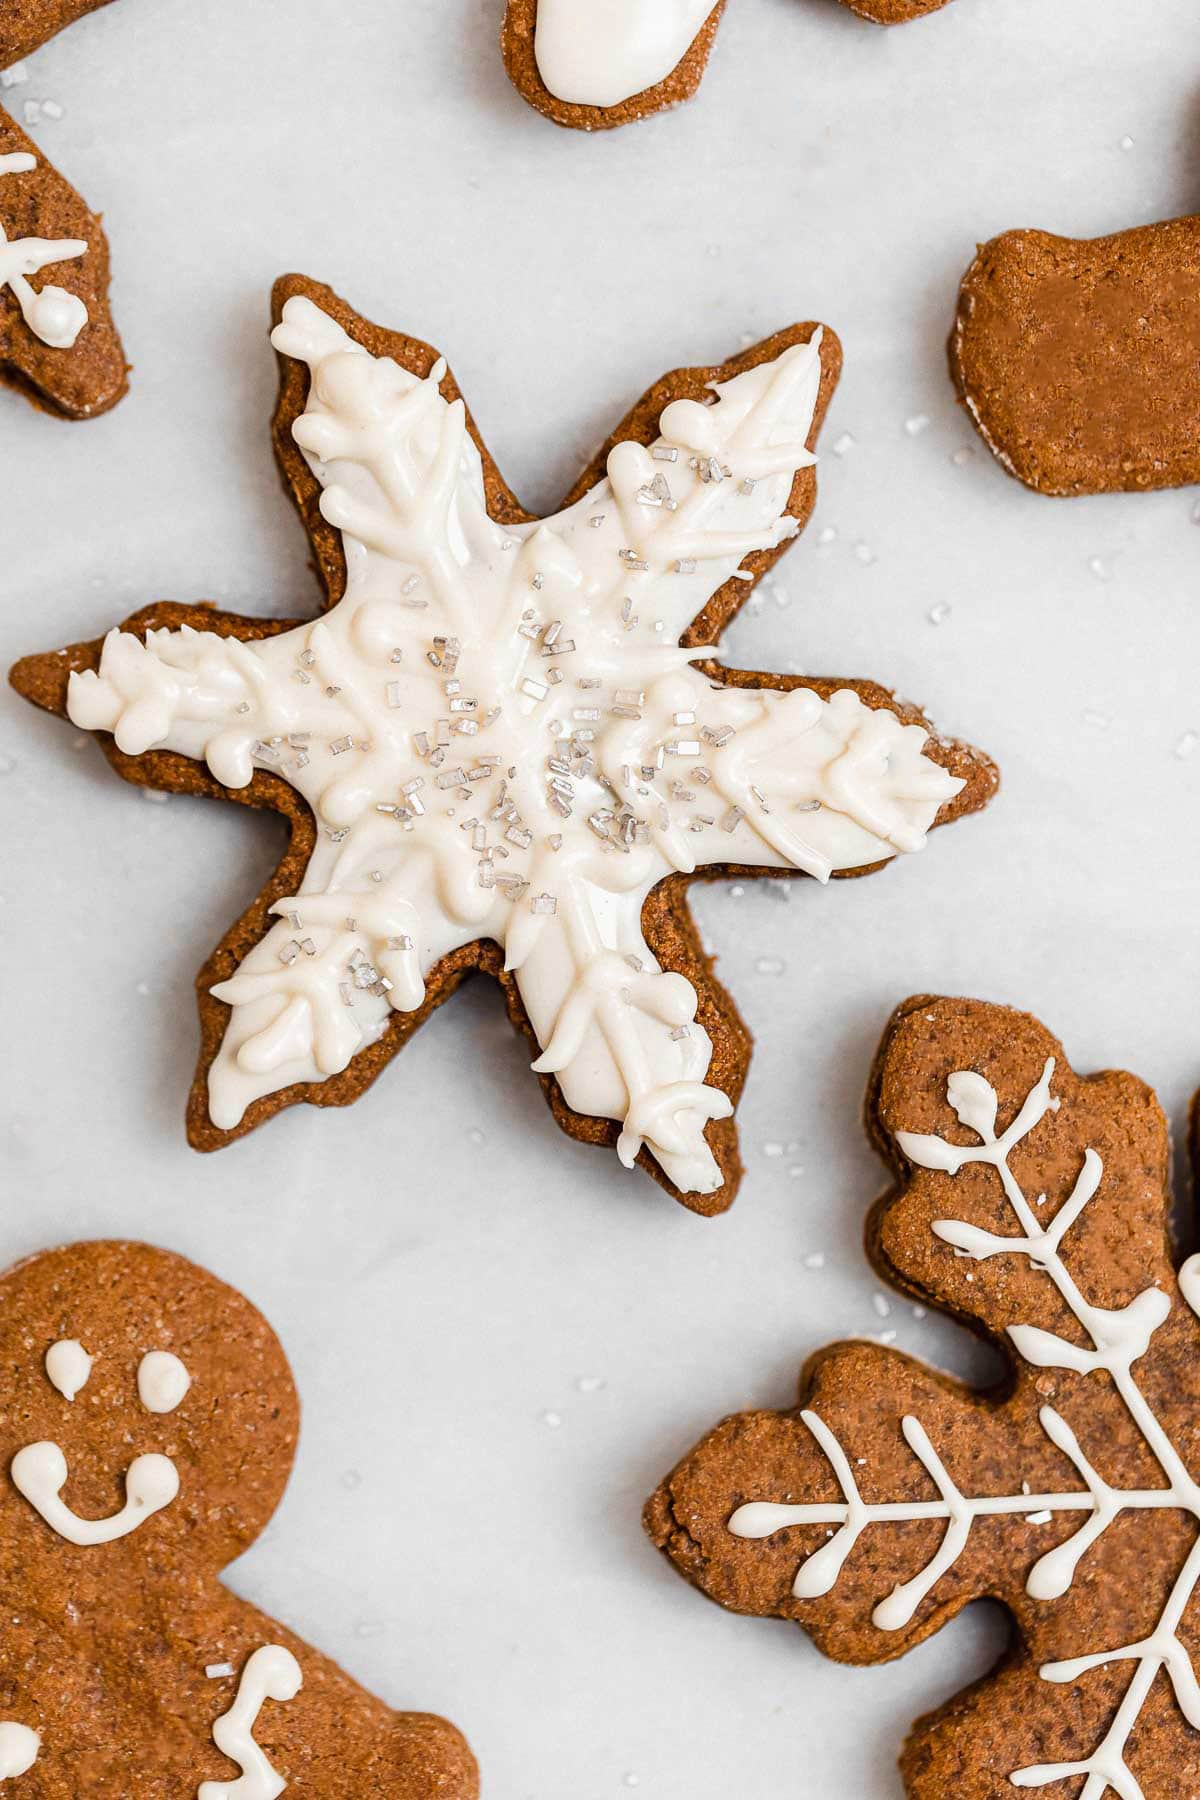 Vegan gingerbread cookies with icing.